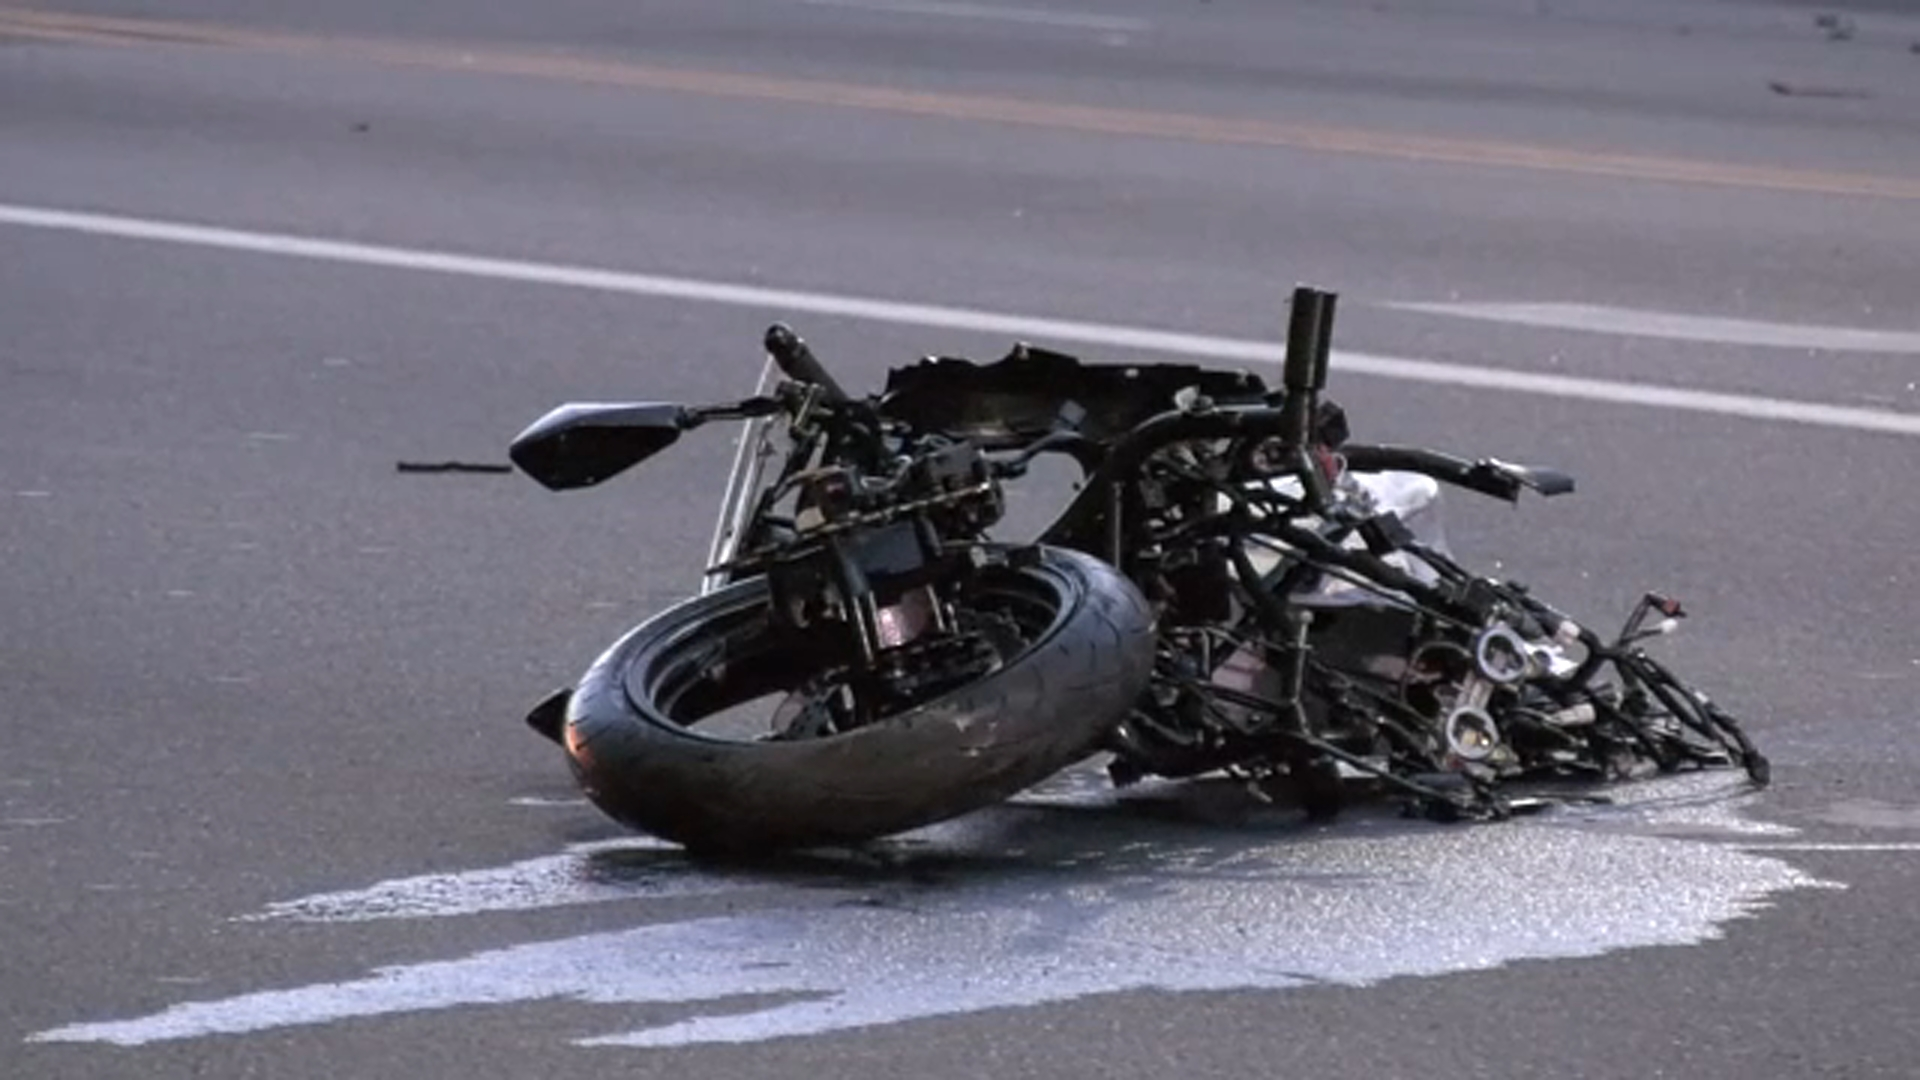 Motorcycle accident | abc7ny com